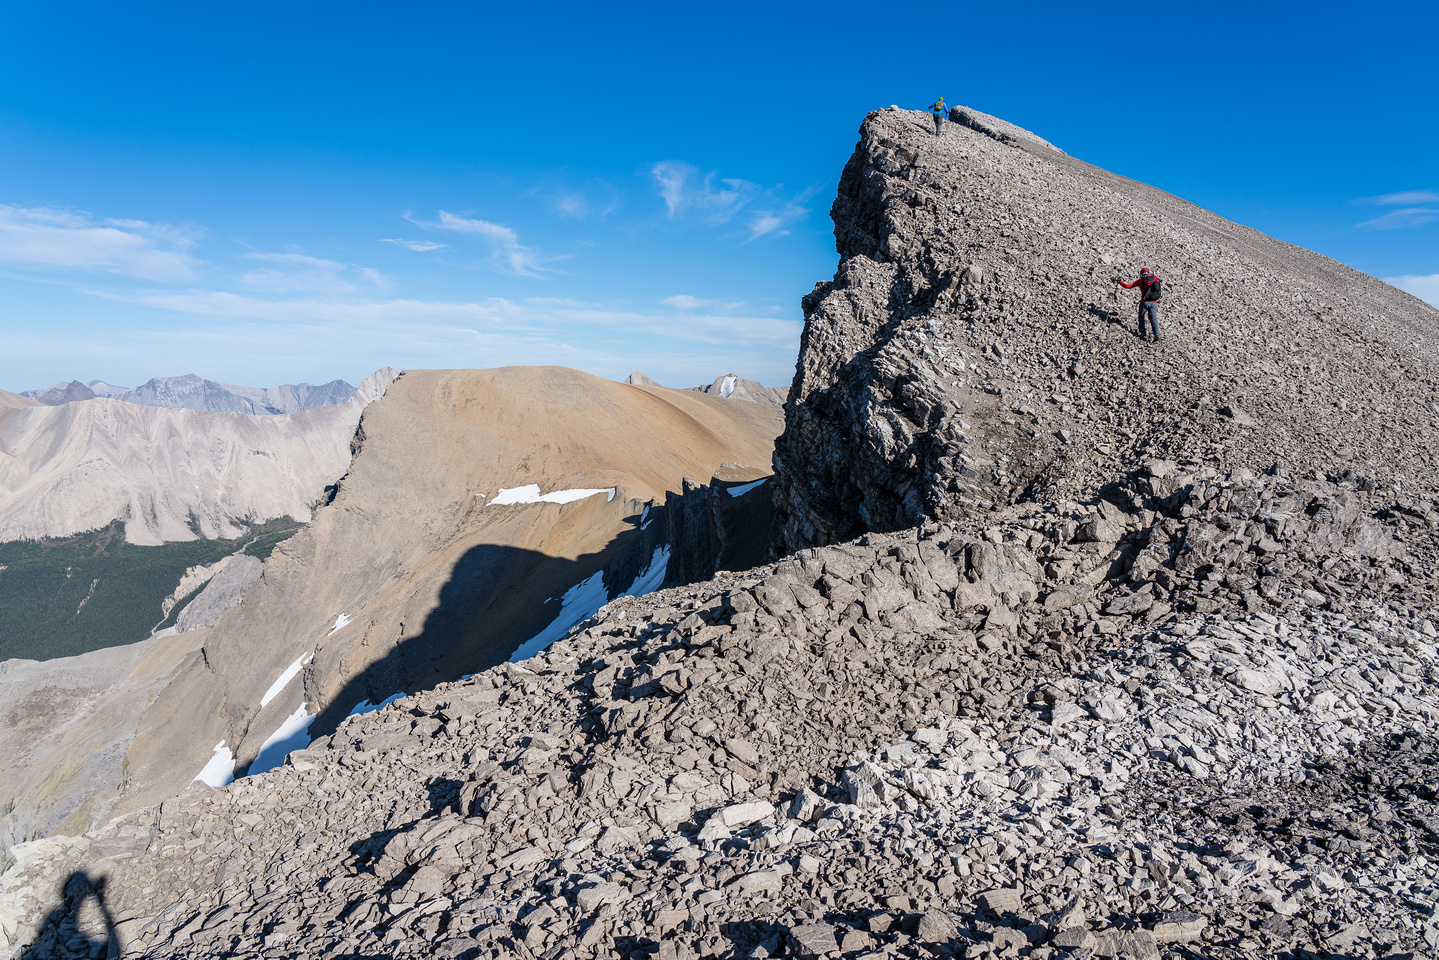 Ascending the scenic NW ridge of Dip Slope Mountain.